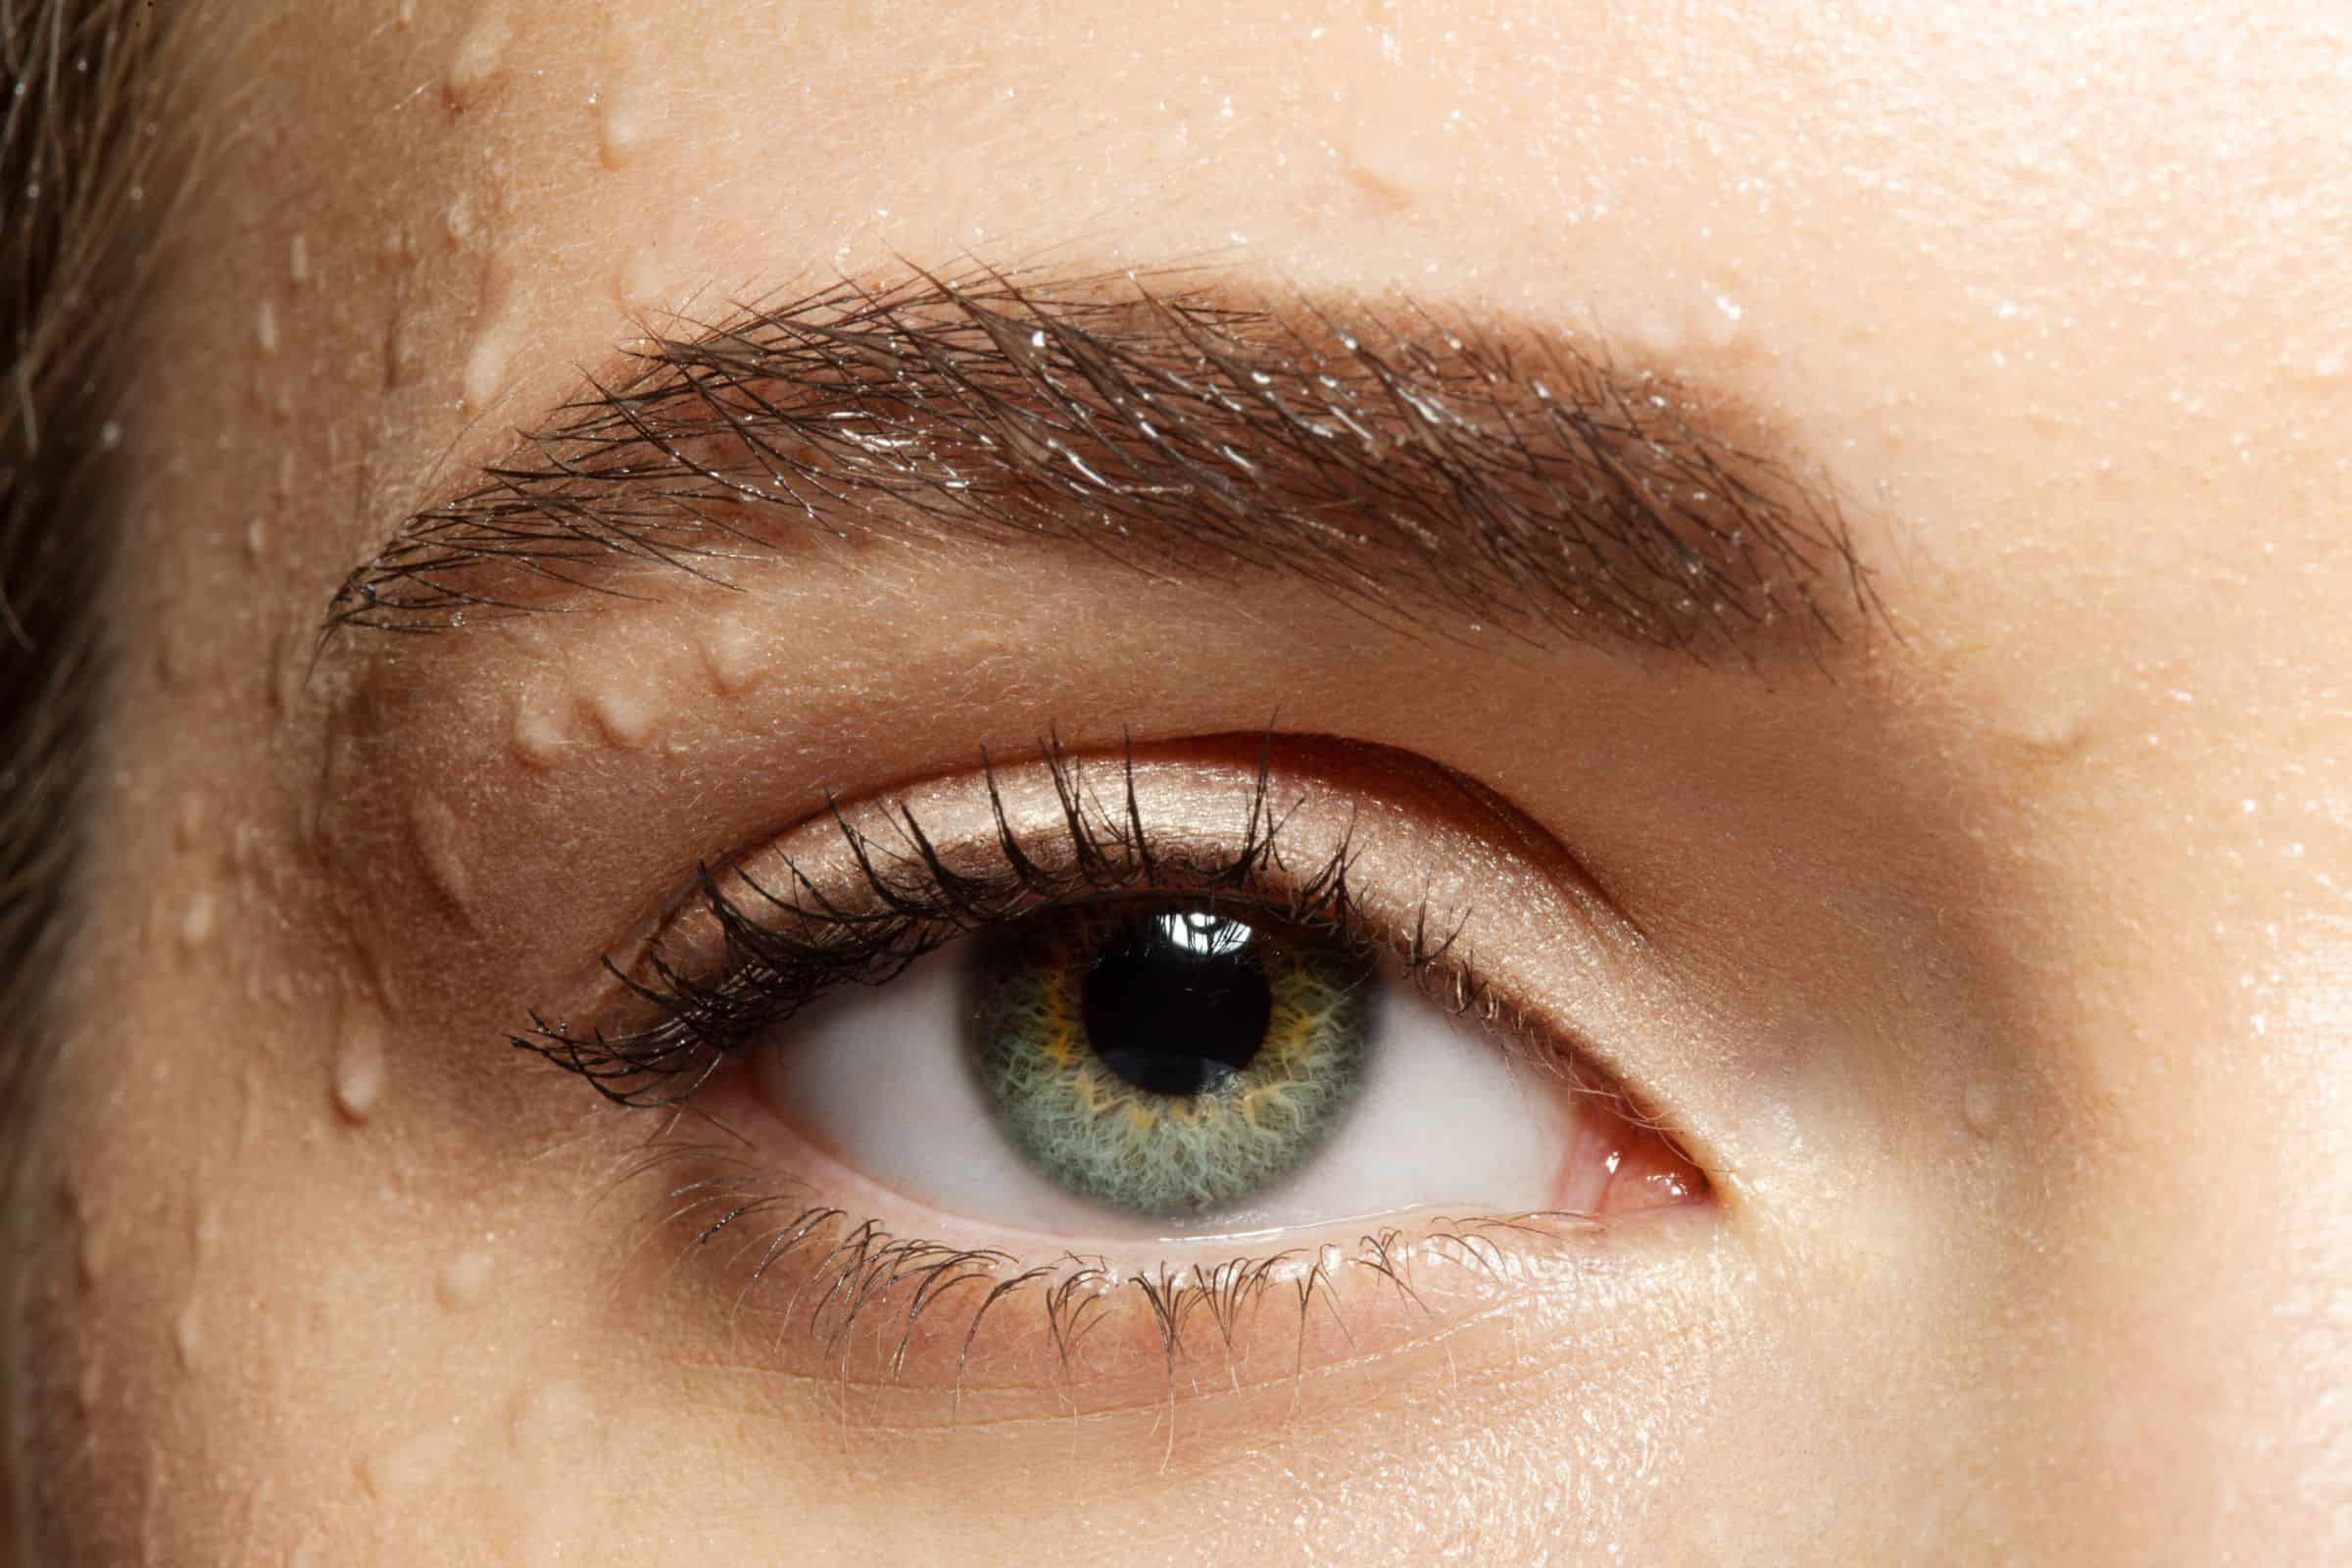 Close-up of natural make-up eye with black eyelashes and brown eyebrows with water drops